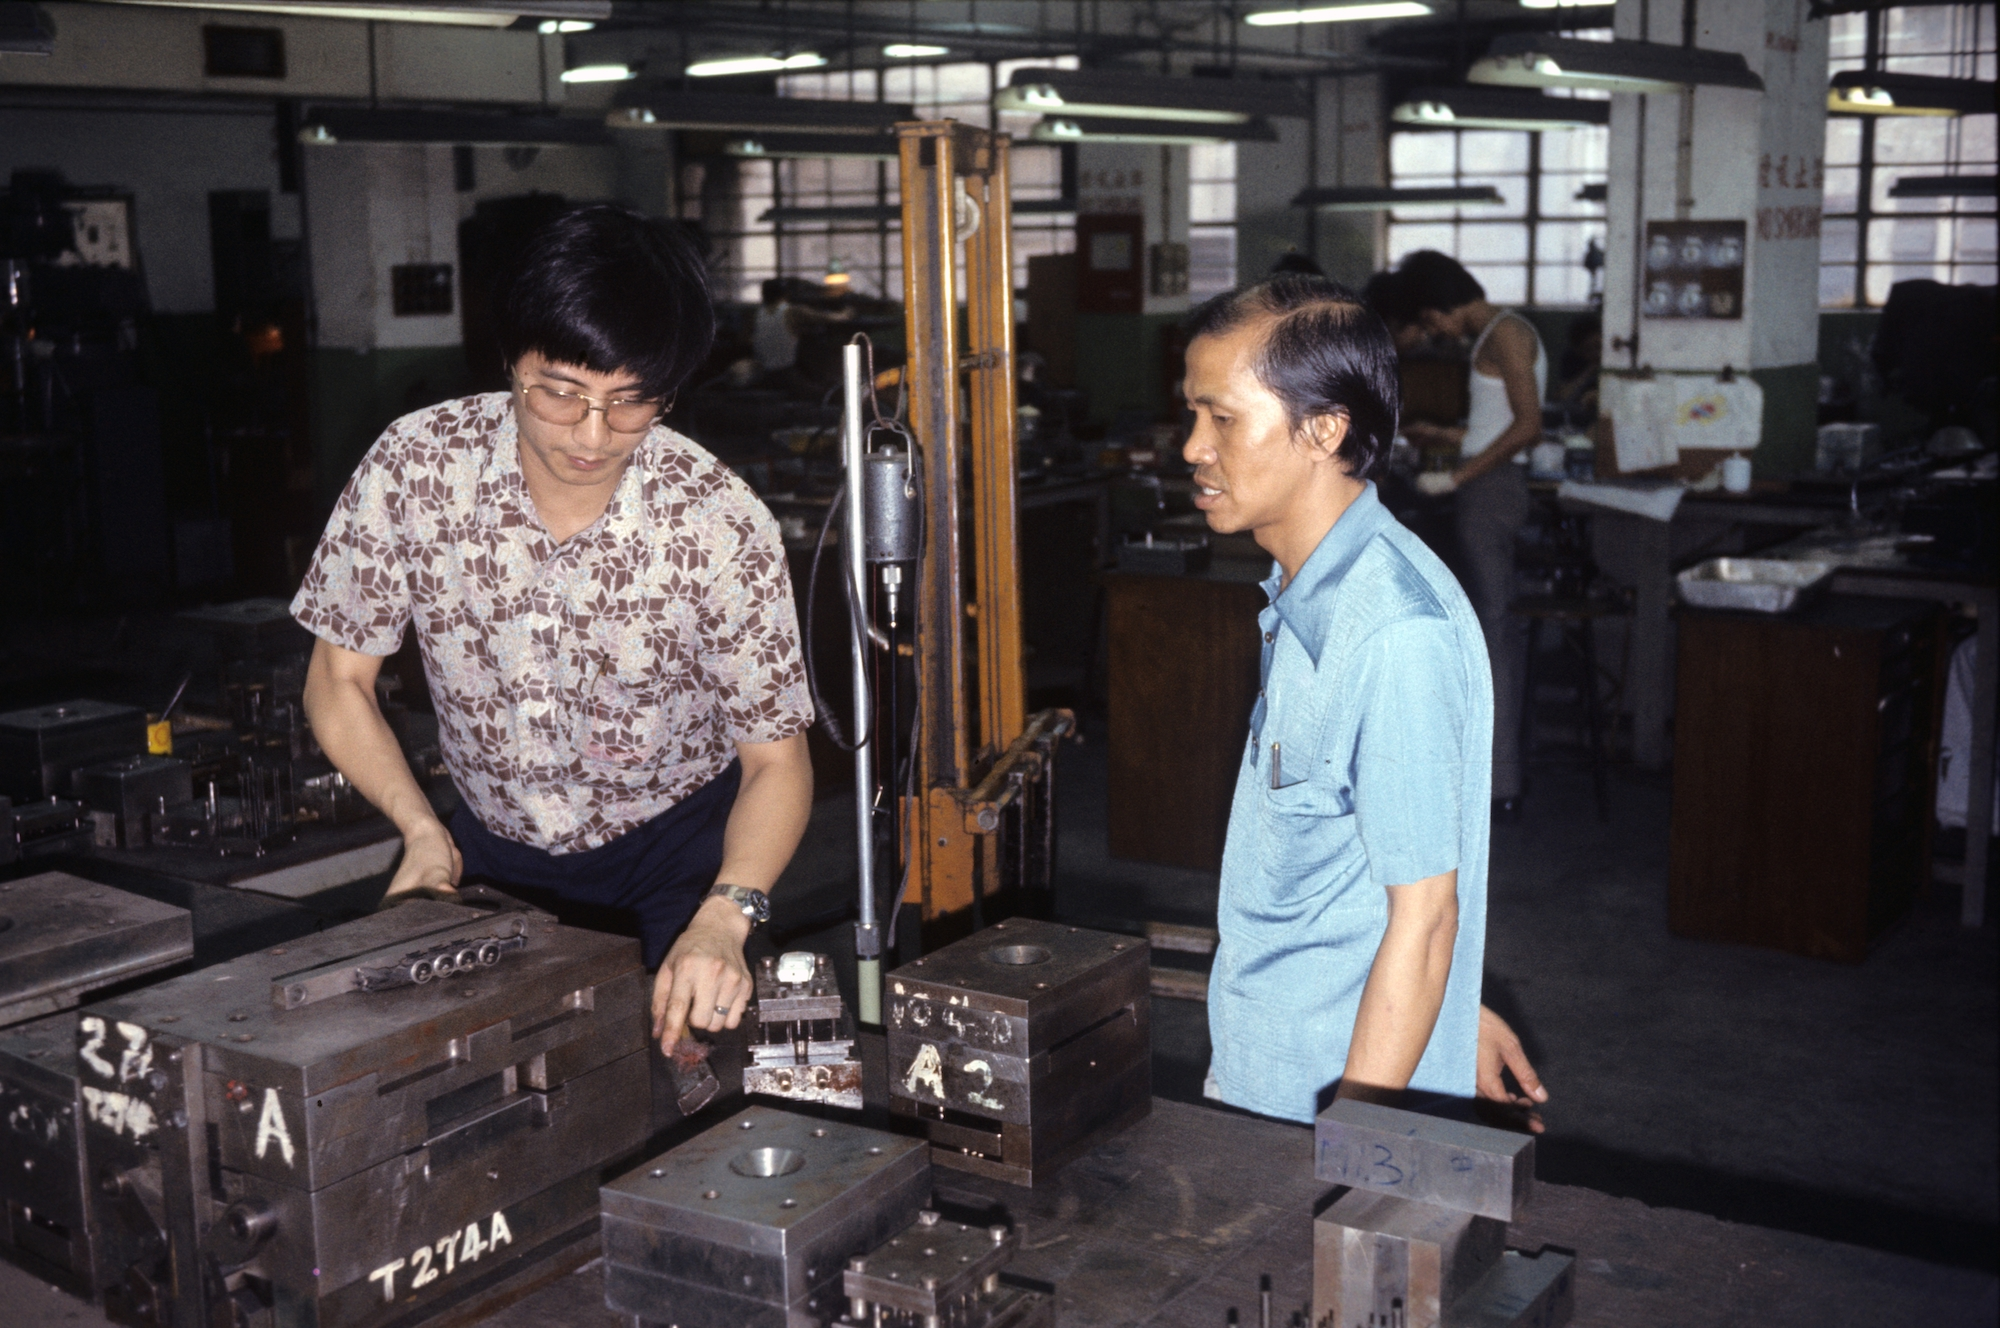 tyco toys hong kong 1976 industry